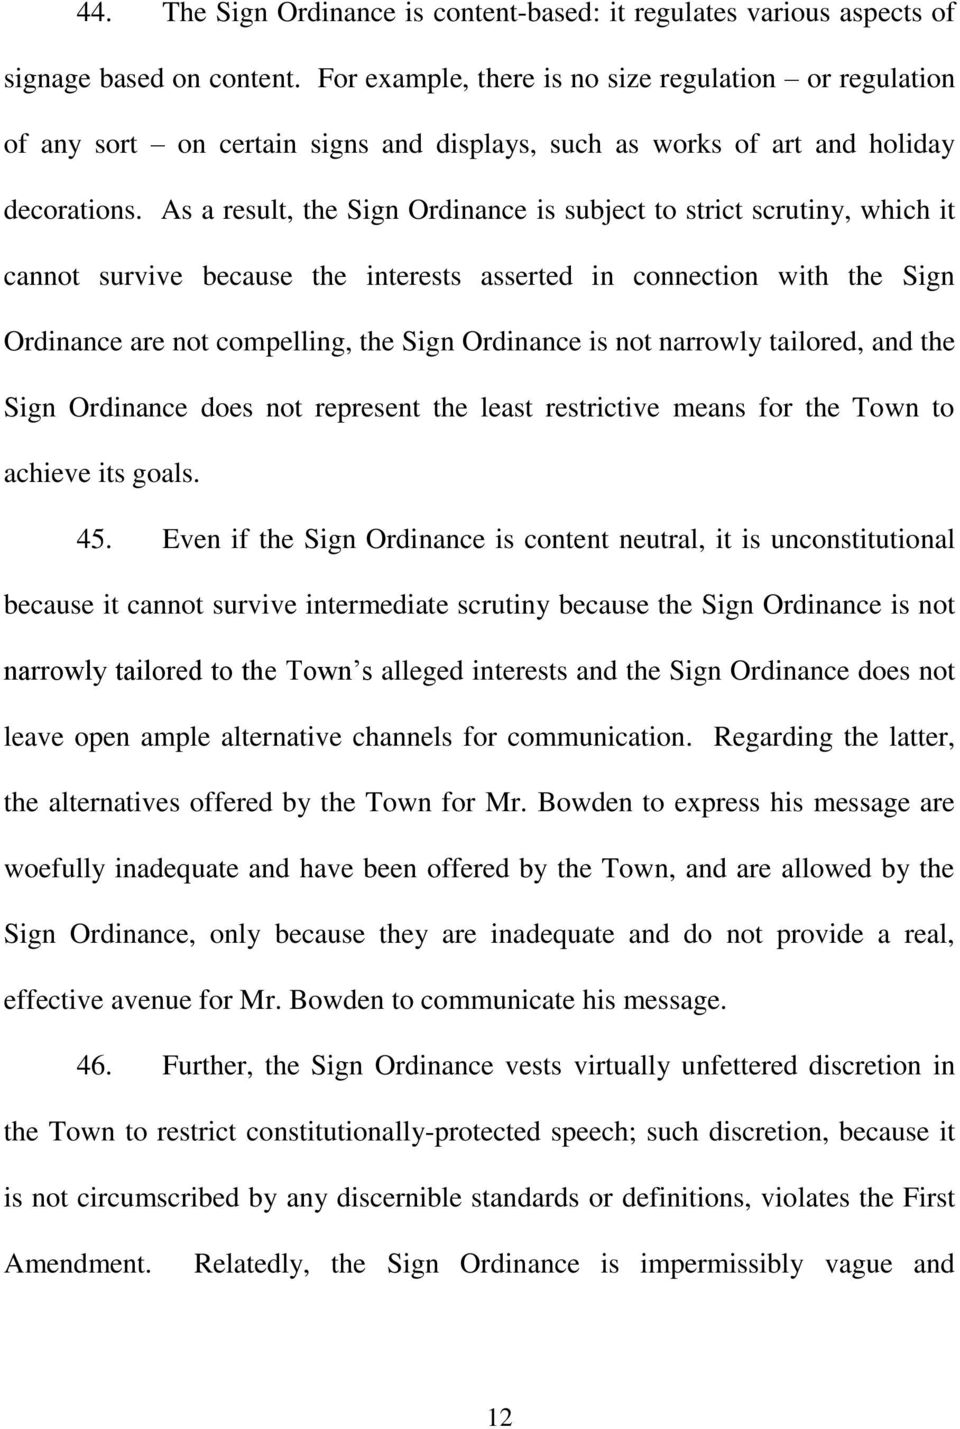 As a result, the Sign Ordinance is subject to strict scrutiny, which it cannot survive because the interests asserted in connection with the Sign Ordinance are not compelling, the Sign Ordinance is